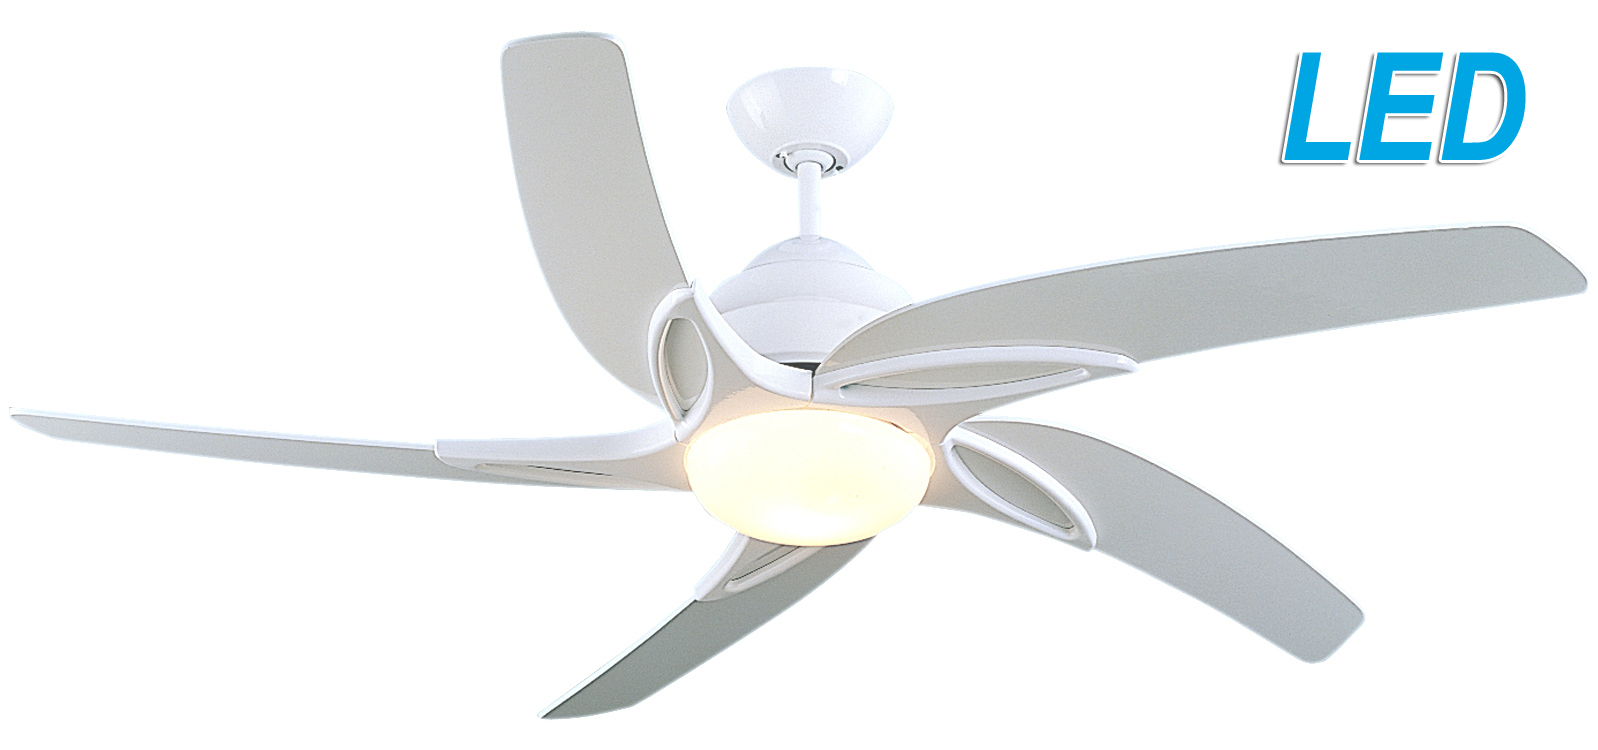 Fantasia viper 54 white ceiling fan remote control led light 115663 fantasia viper 54 white ceiling fan remote control led light 115663 aloadofball Choice Image